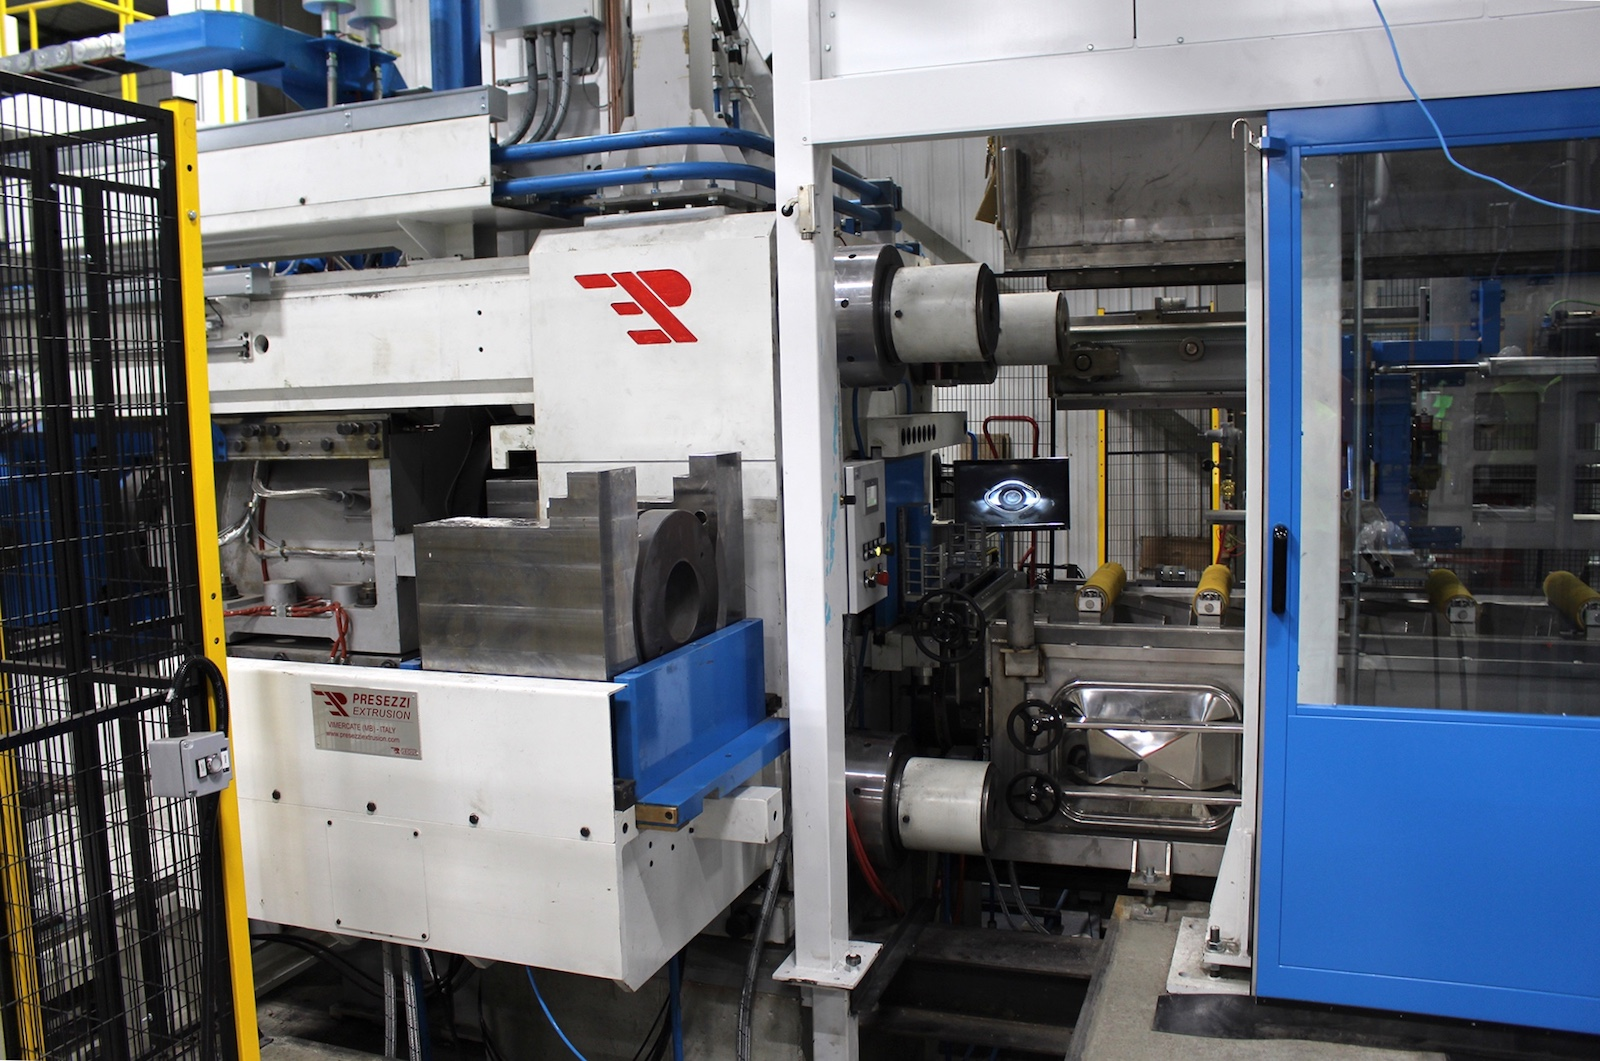 Figure 1. The new press line is not only highly automated, but also includes a number of safety features, such as cages and doors around all of the equipment.